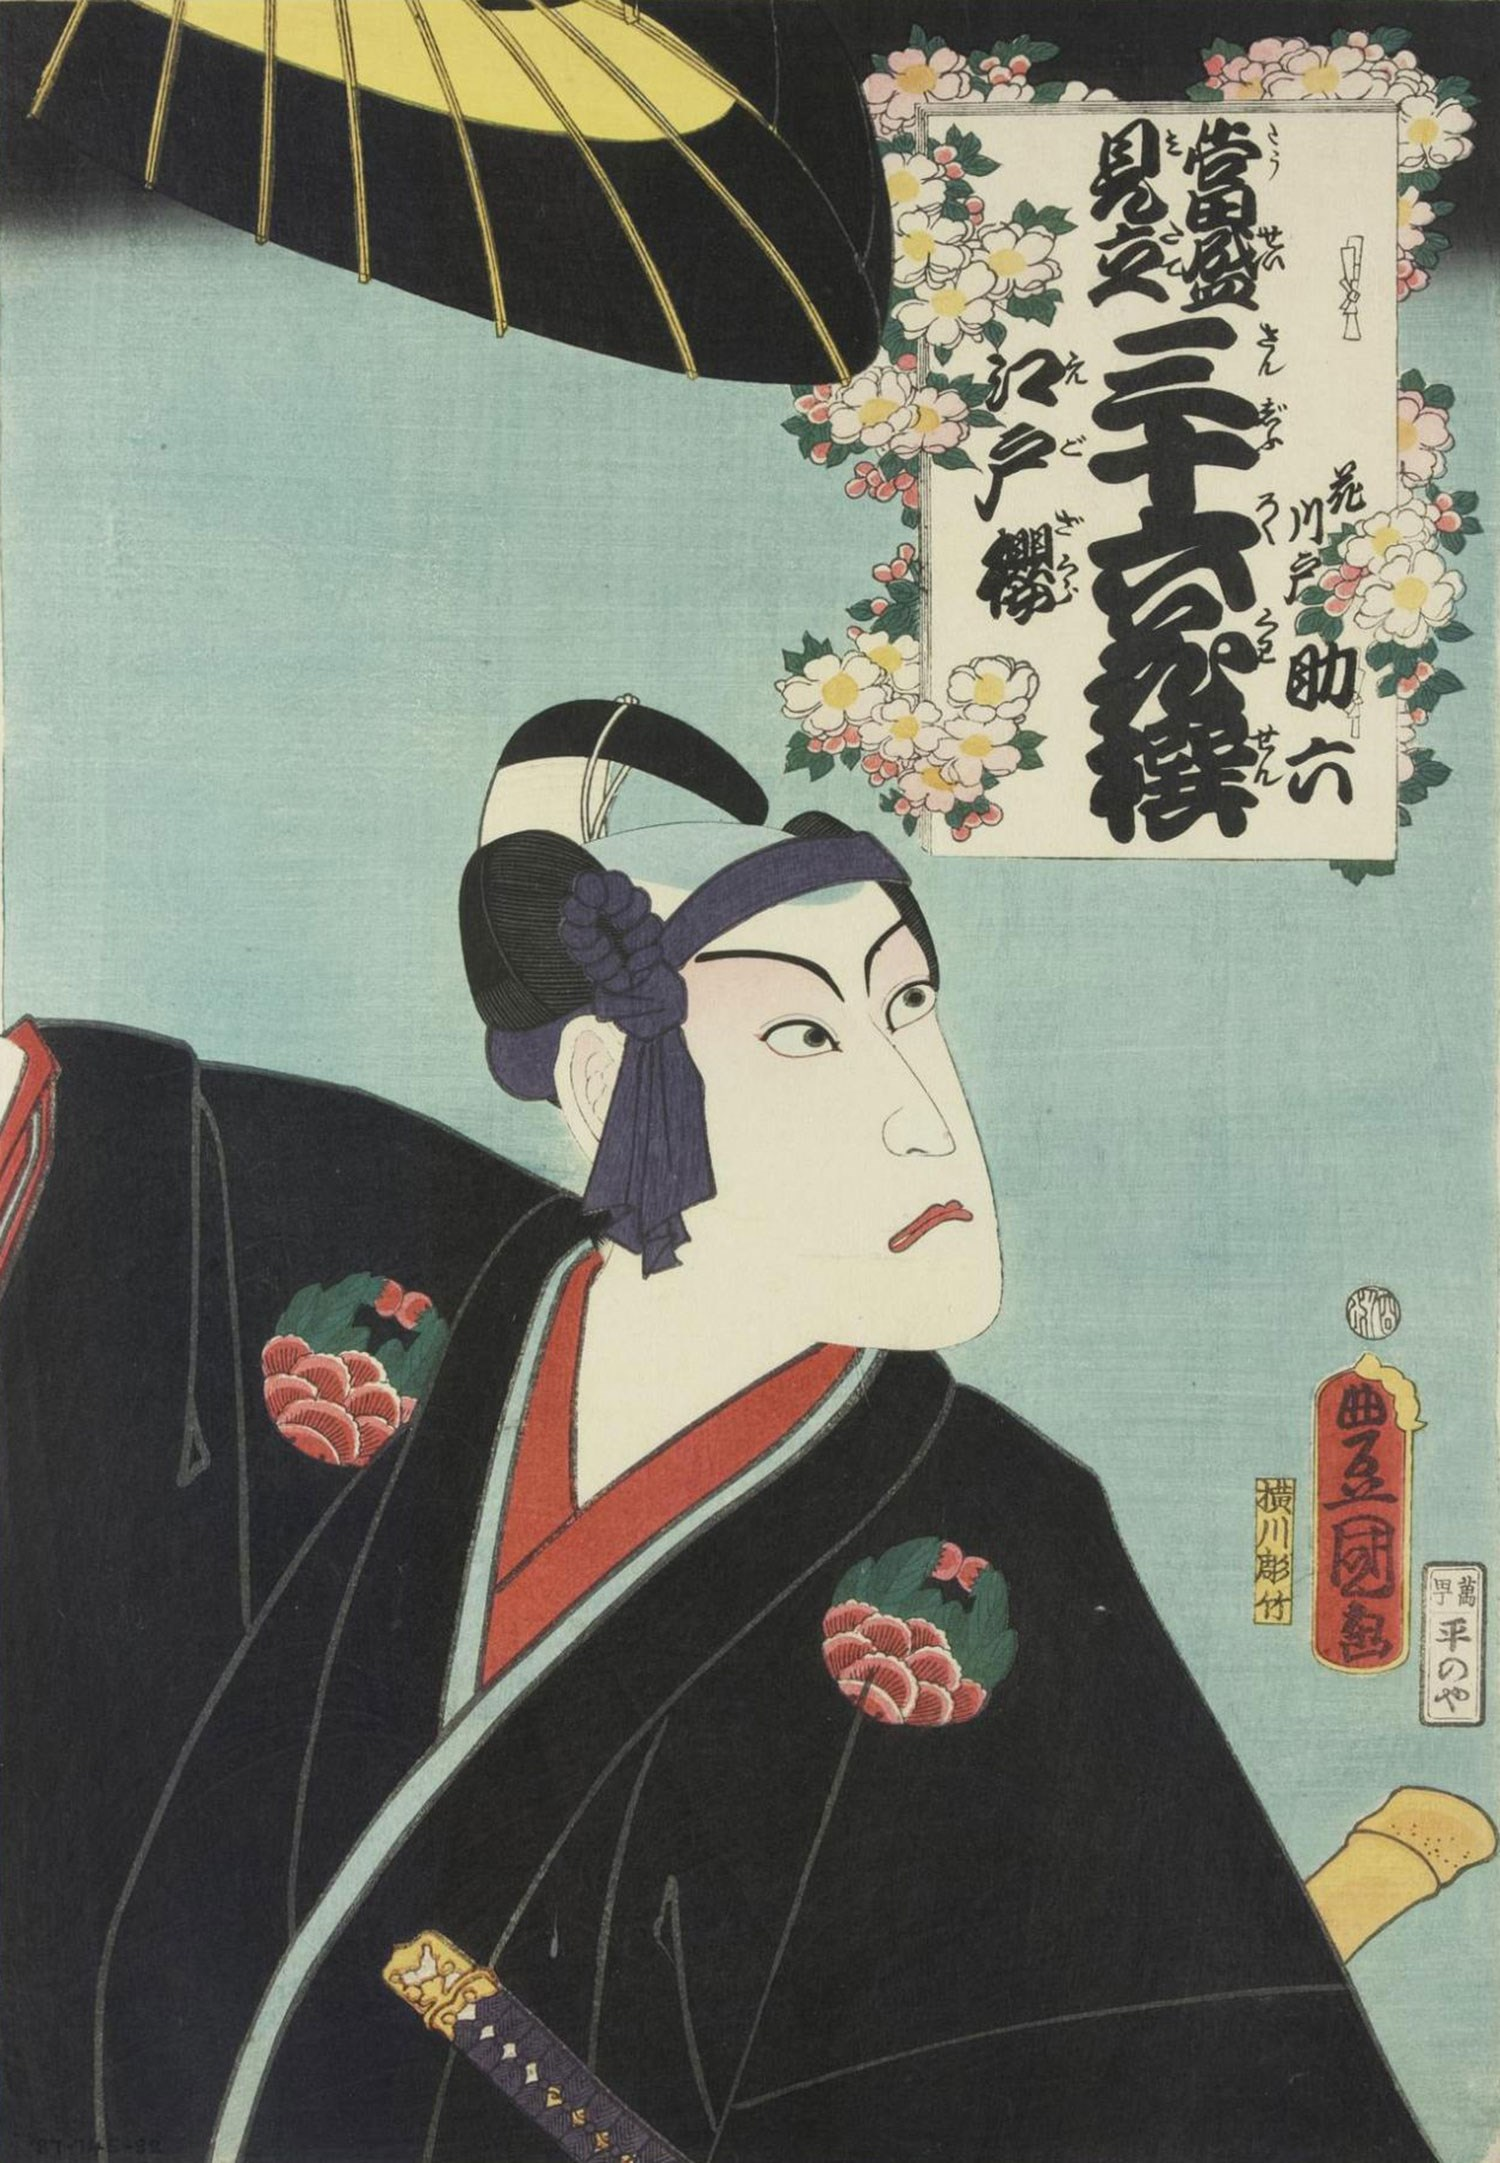 Kawarasaki Gonjūrō I as Hanakawado Sukeroku, from the series Thirty-six Selected Floral Parallels (Tōsei mitate sanjūrokkasen)